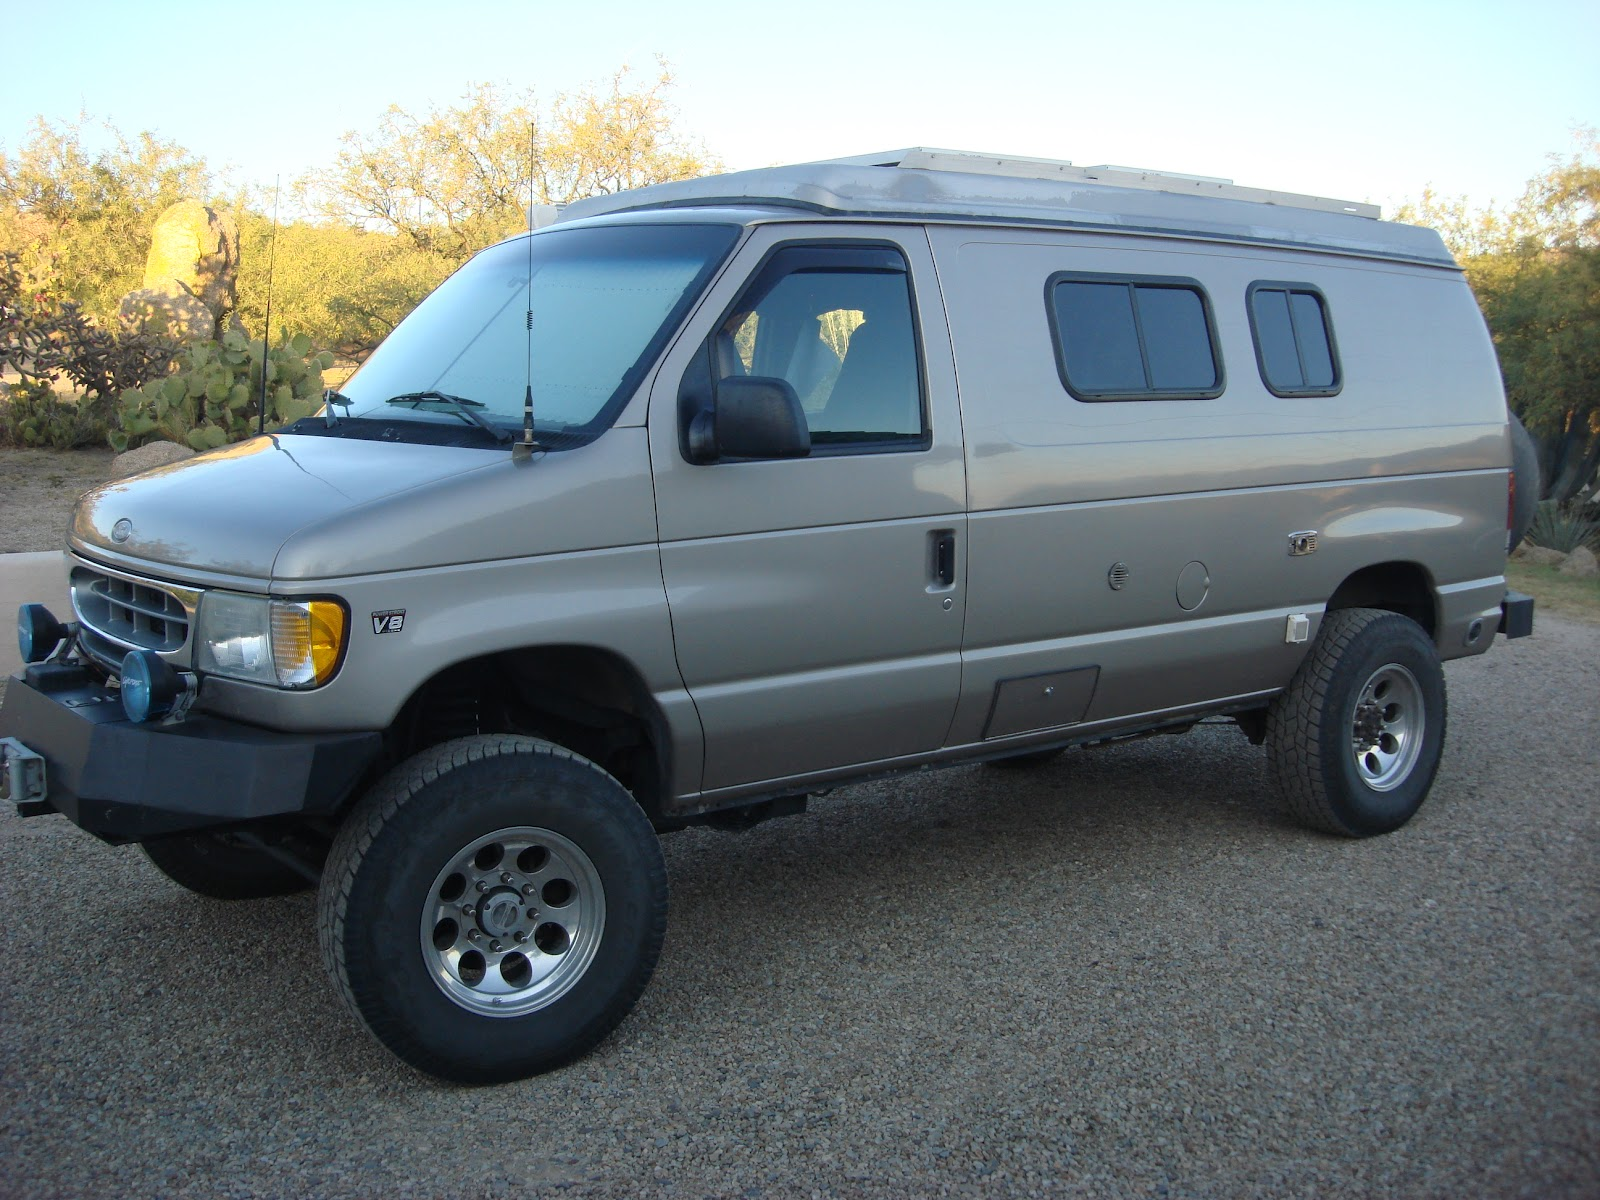 Sportsmobile 4x4 Ford Conversion Van For Sale